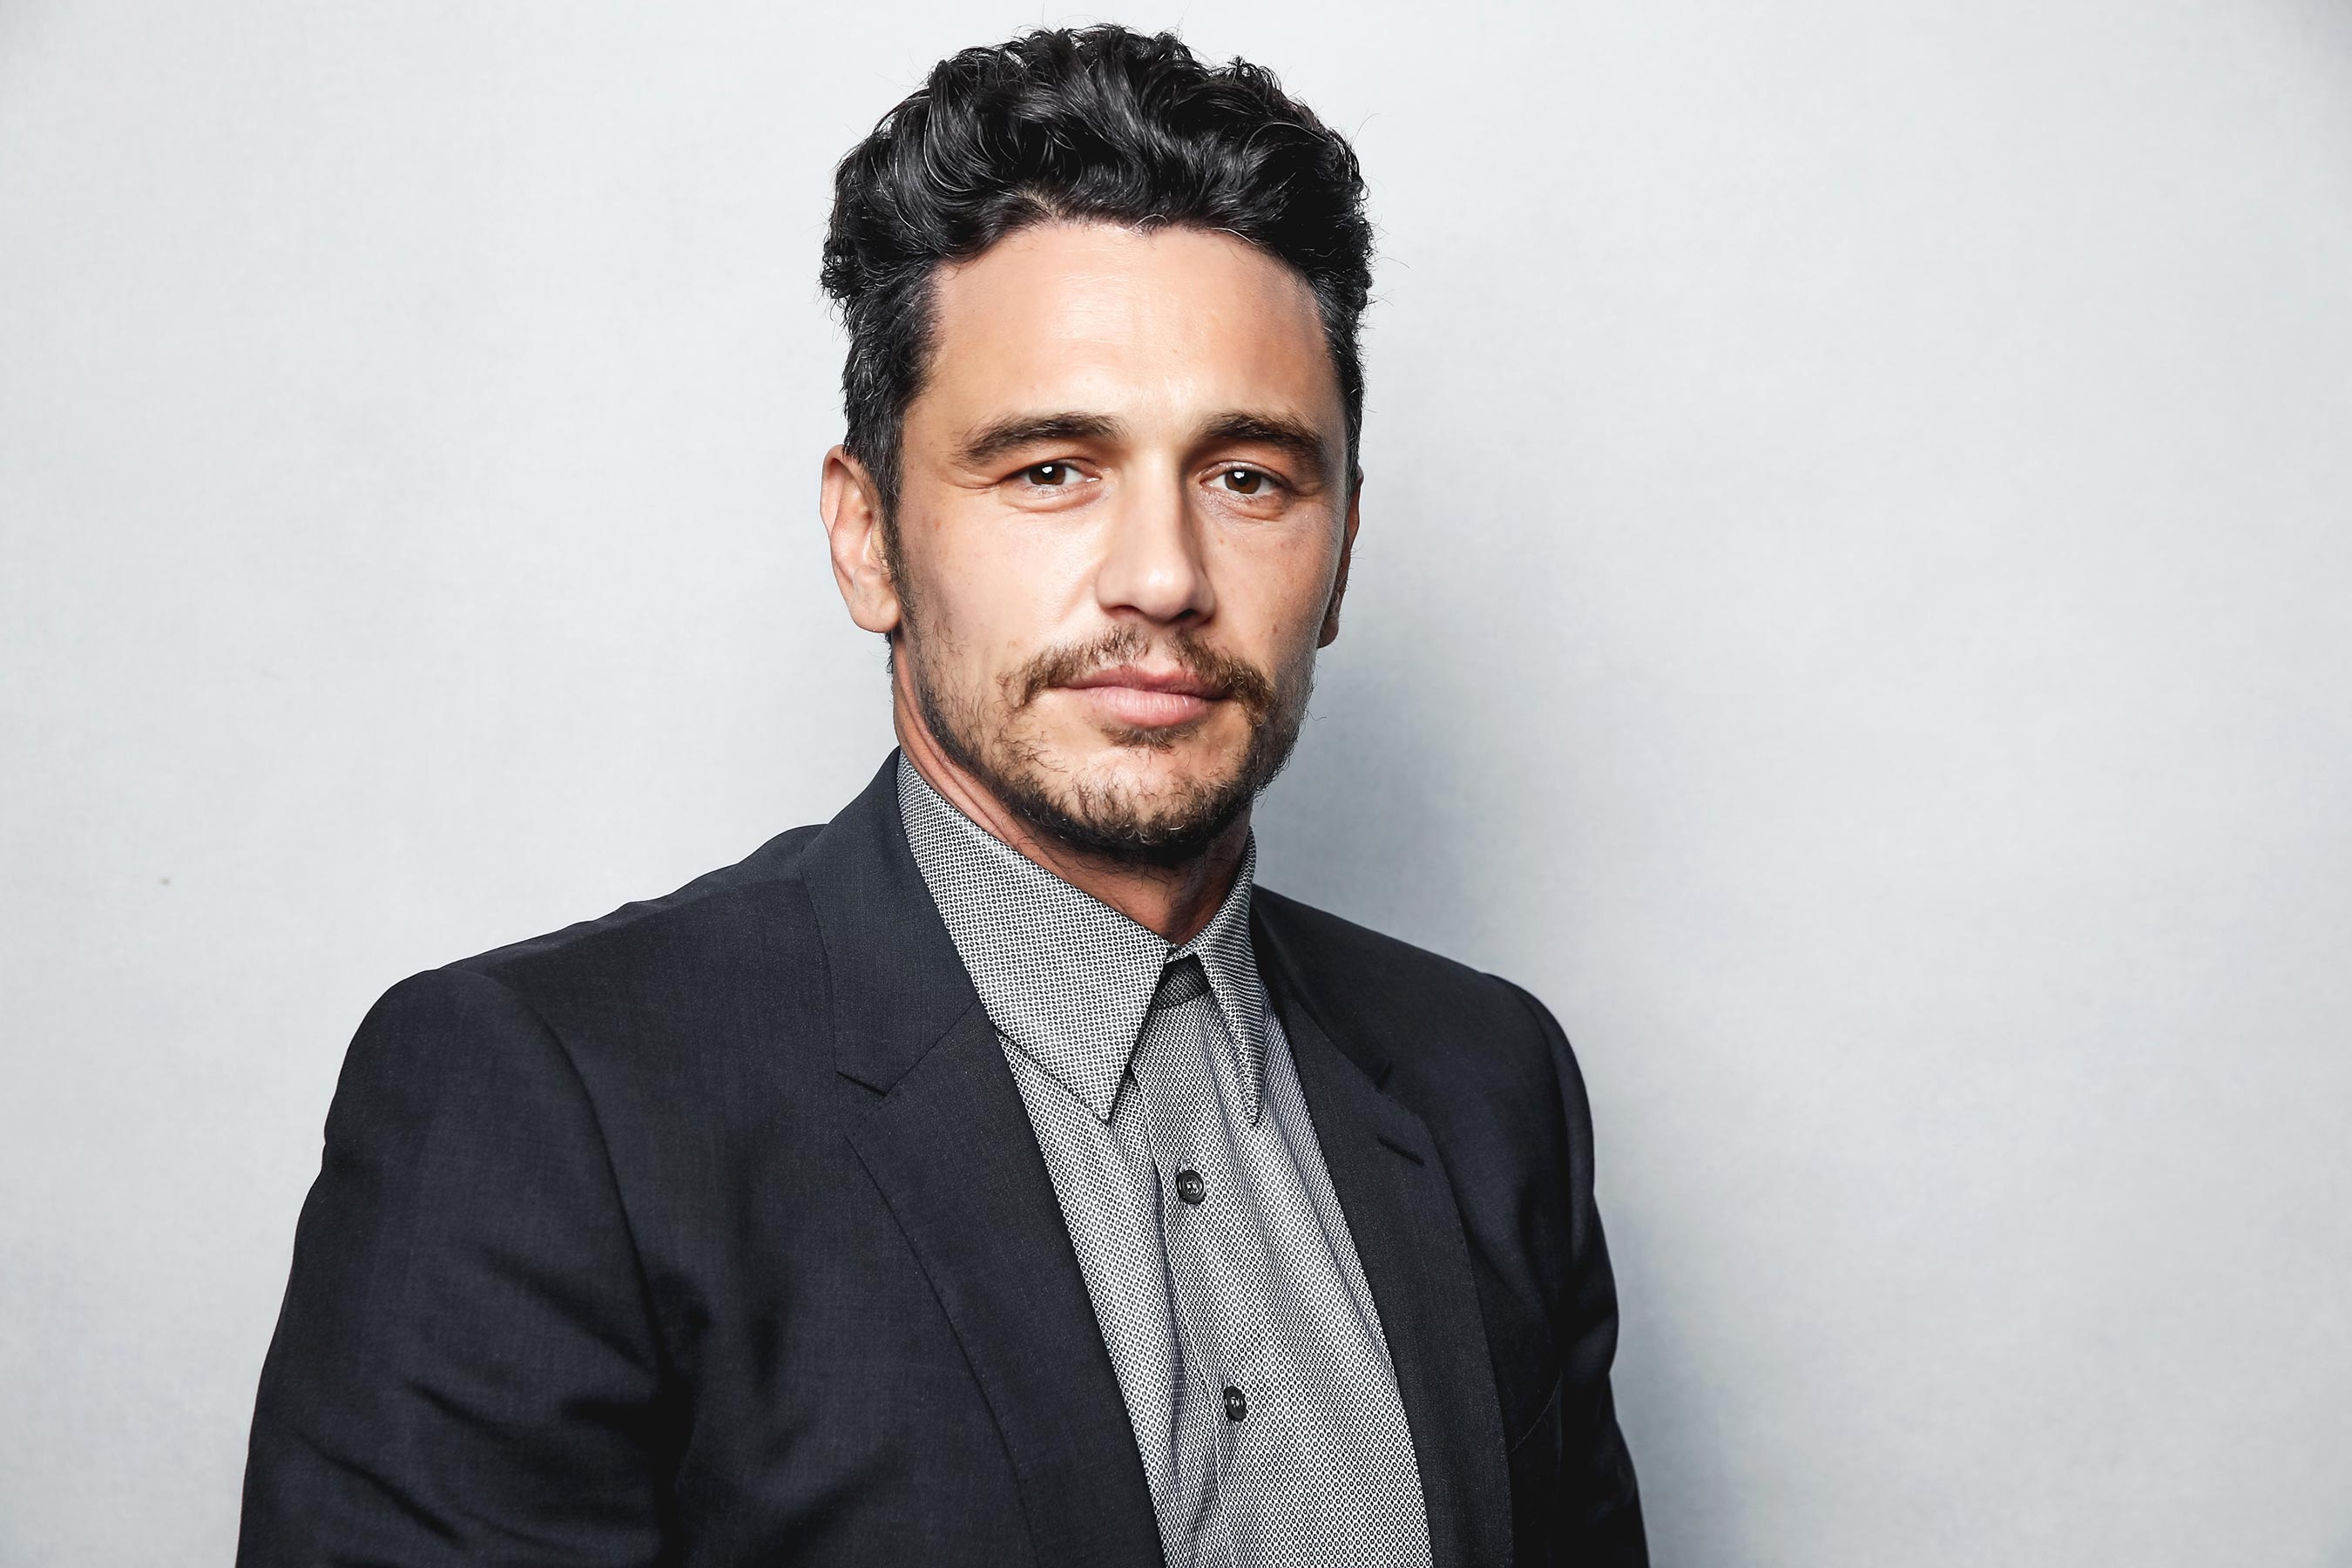 James Franco plans to attend SAG Awards in wake of sexual misconduct allegations